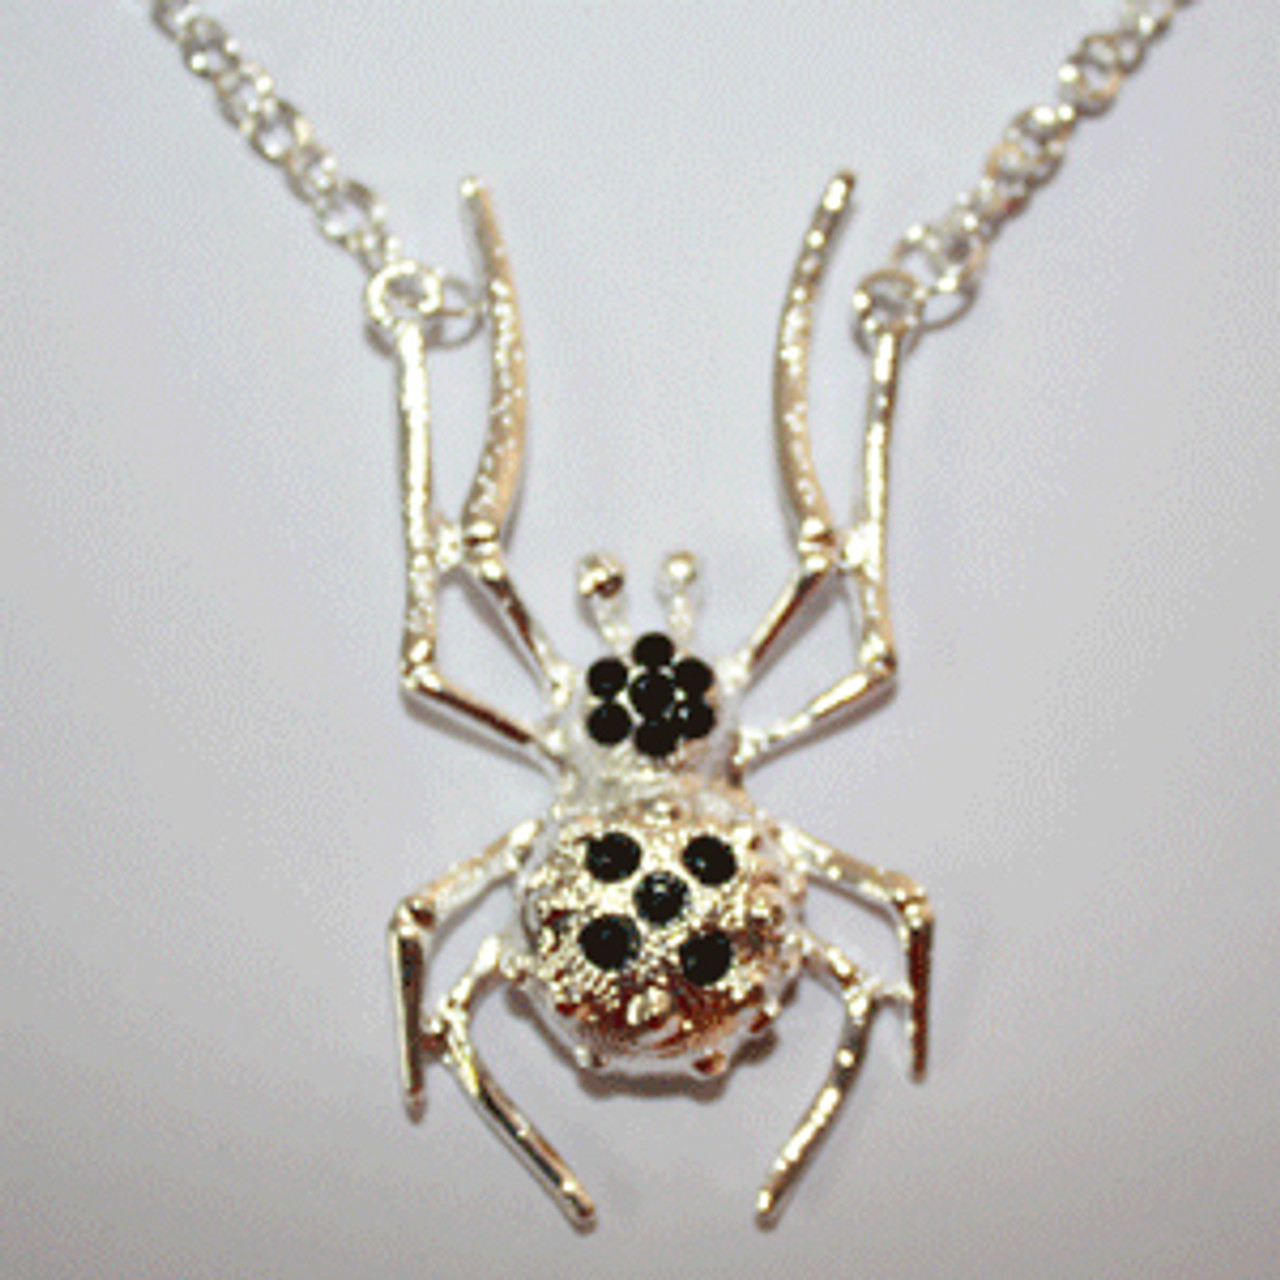 Wholesale spider necklace